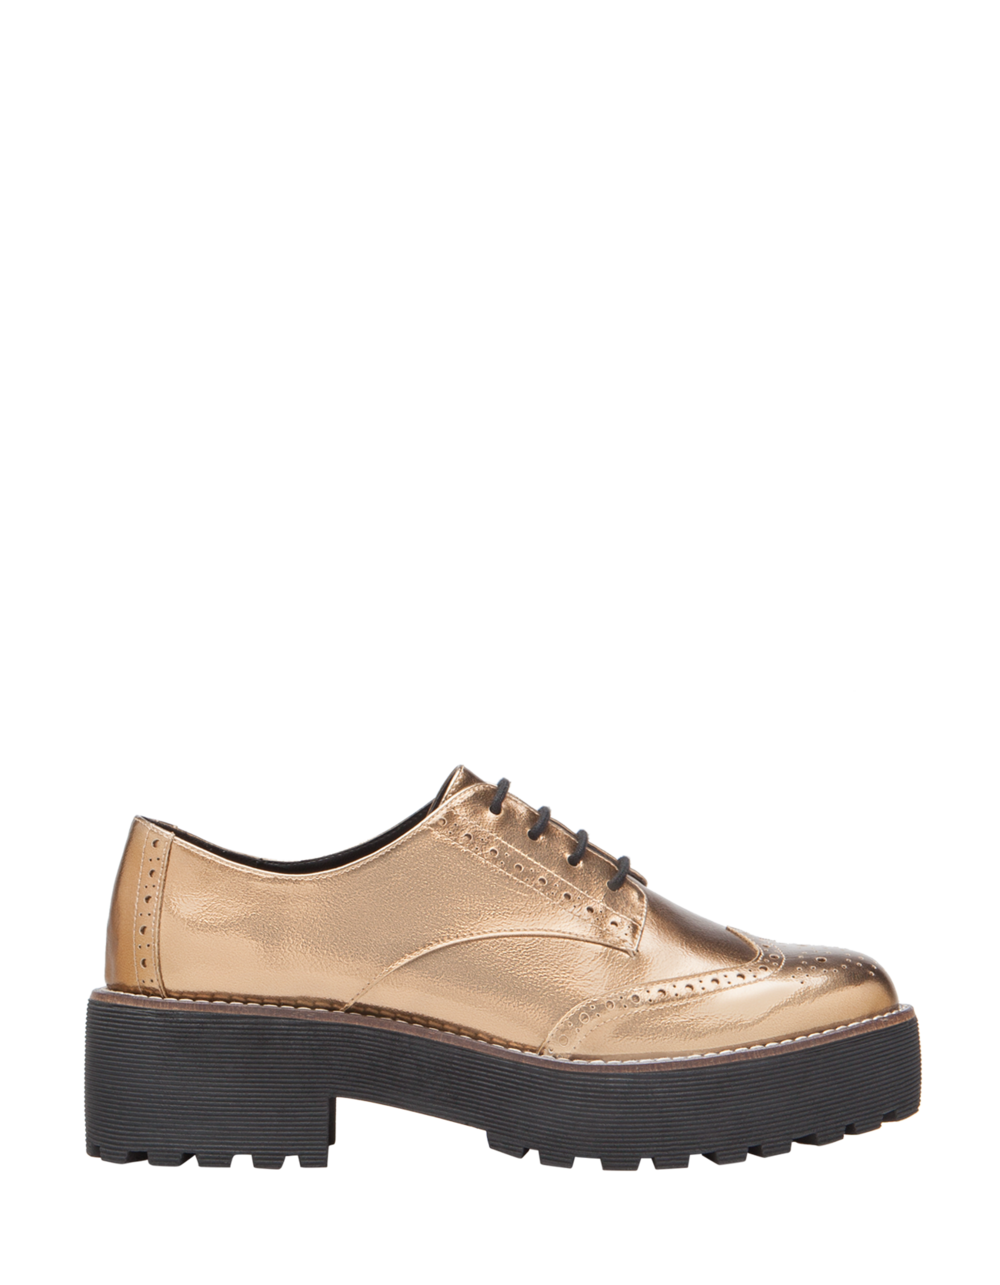 Stradivarius_fw15_shoes (11).png